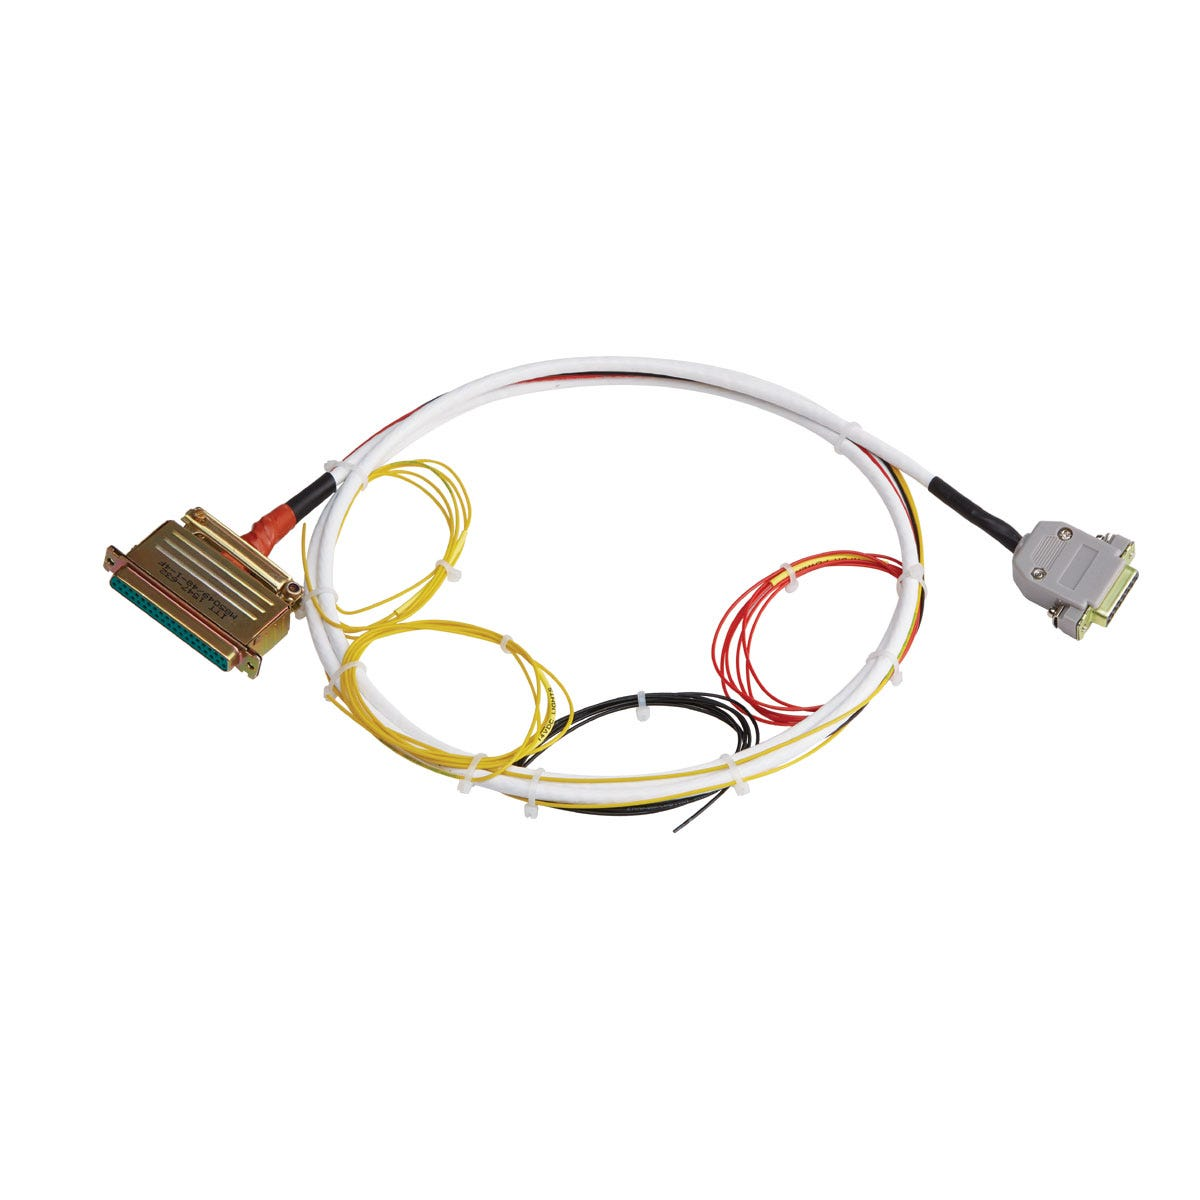 3346 001 stratus esg wiring harness from sporty's pilot shop stratus esg wiring diagram at edmiracle.co